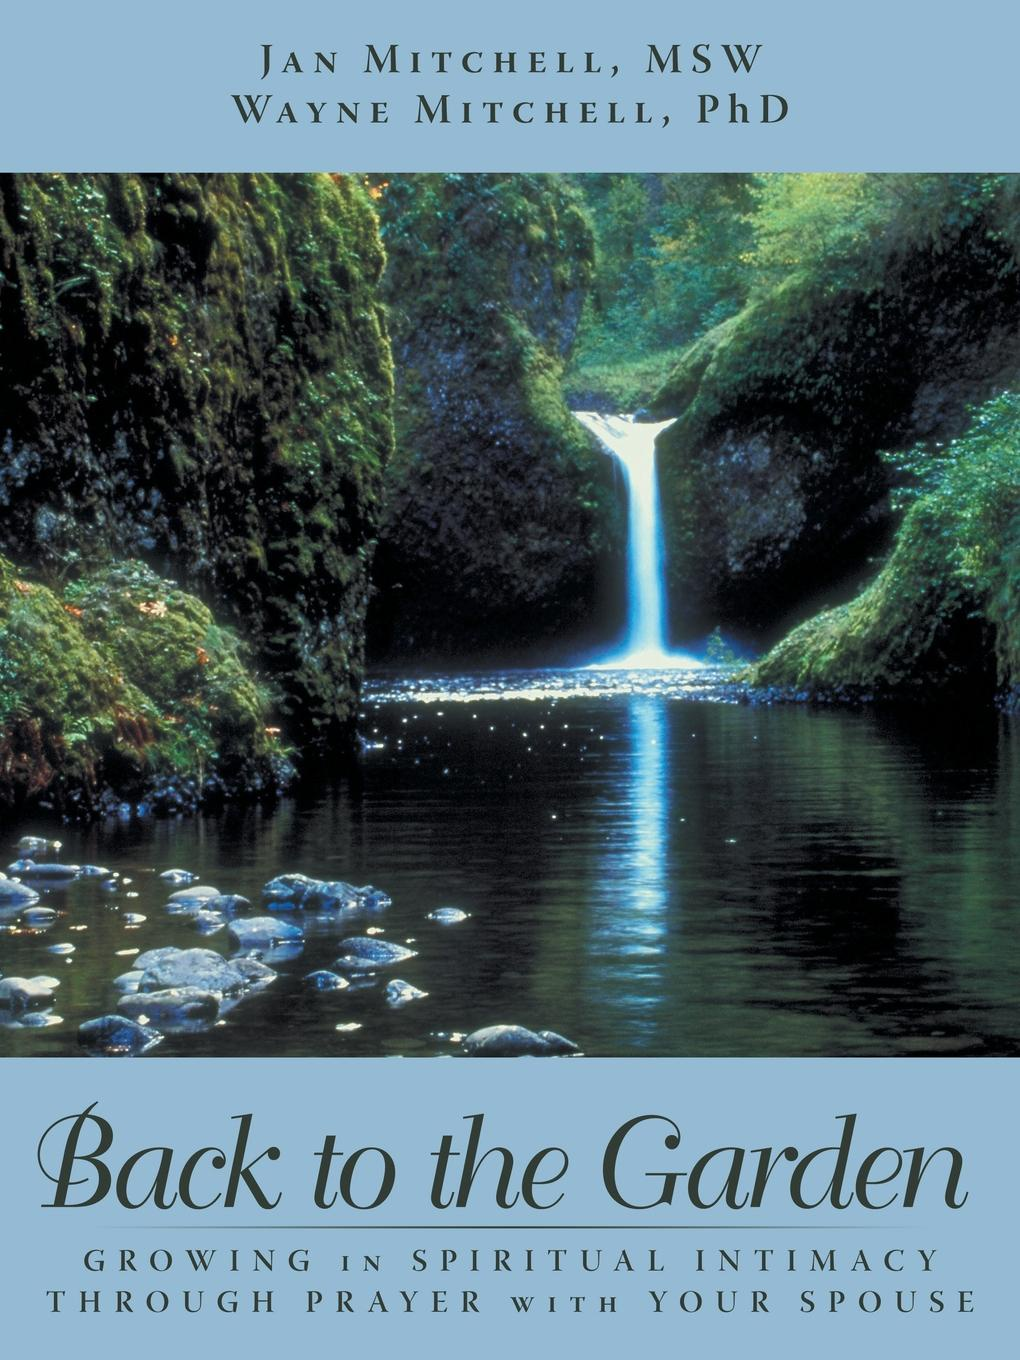 Jan Mitchell MSW Wayne Mitchell PhD BACK TO THE GARDEN. Growing in Spiritual Intimacy through Prayer with Your Spouse jan yager phd jan yager tthe fast track guide to speaking in public